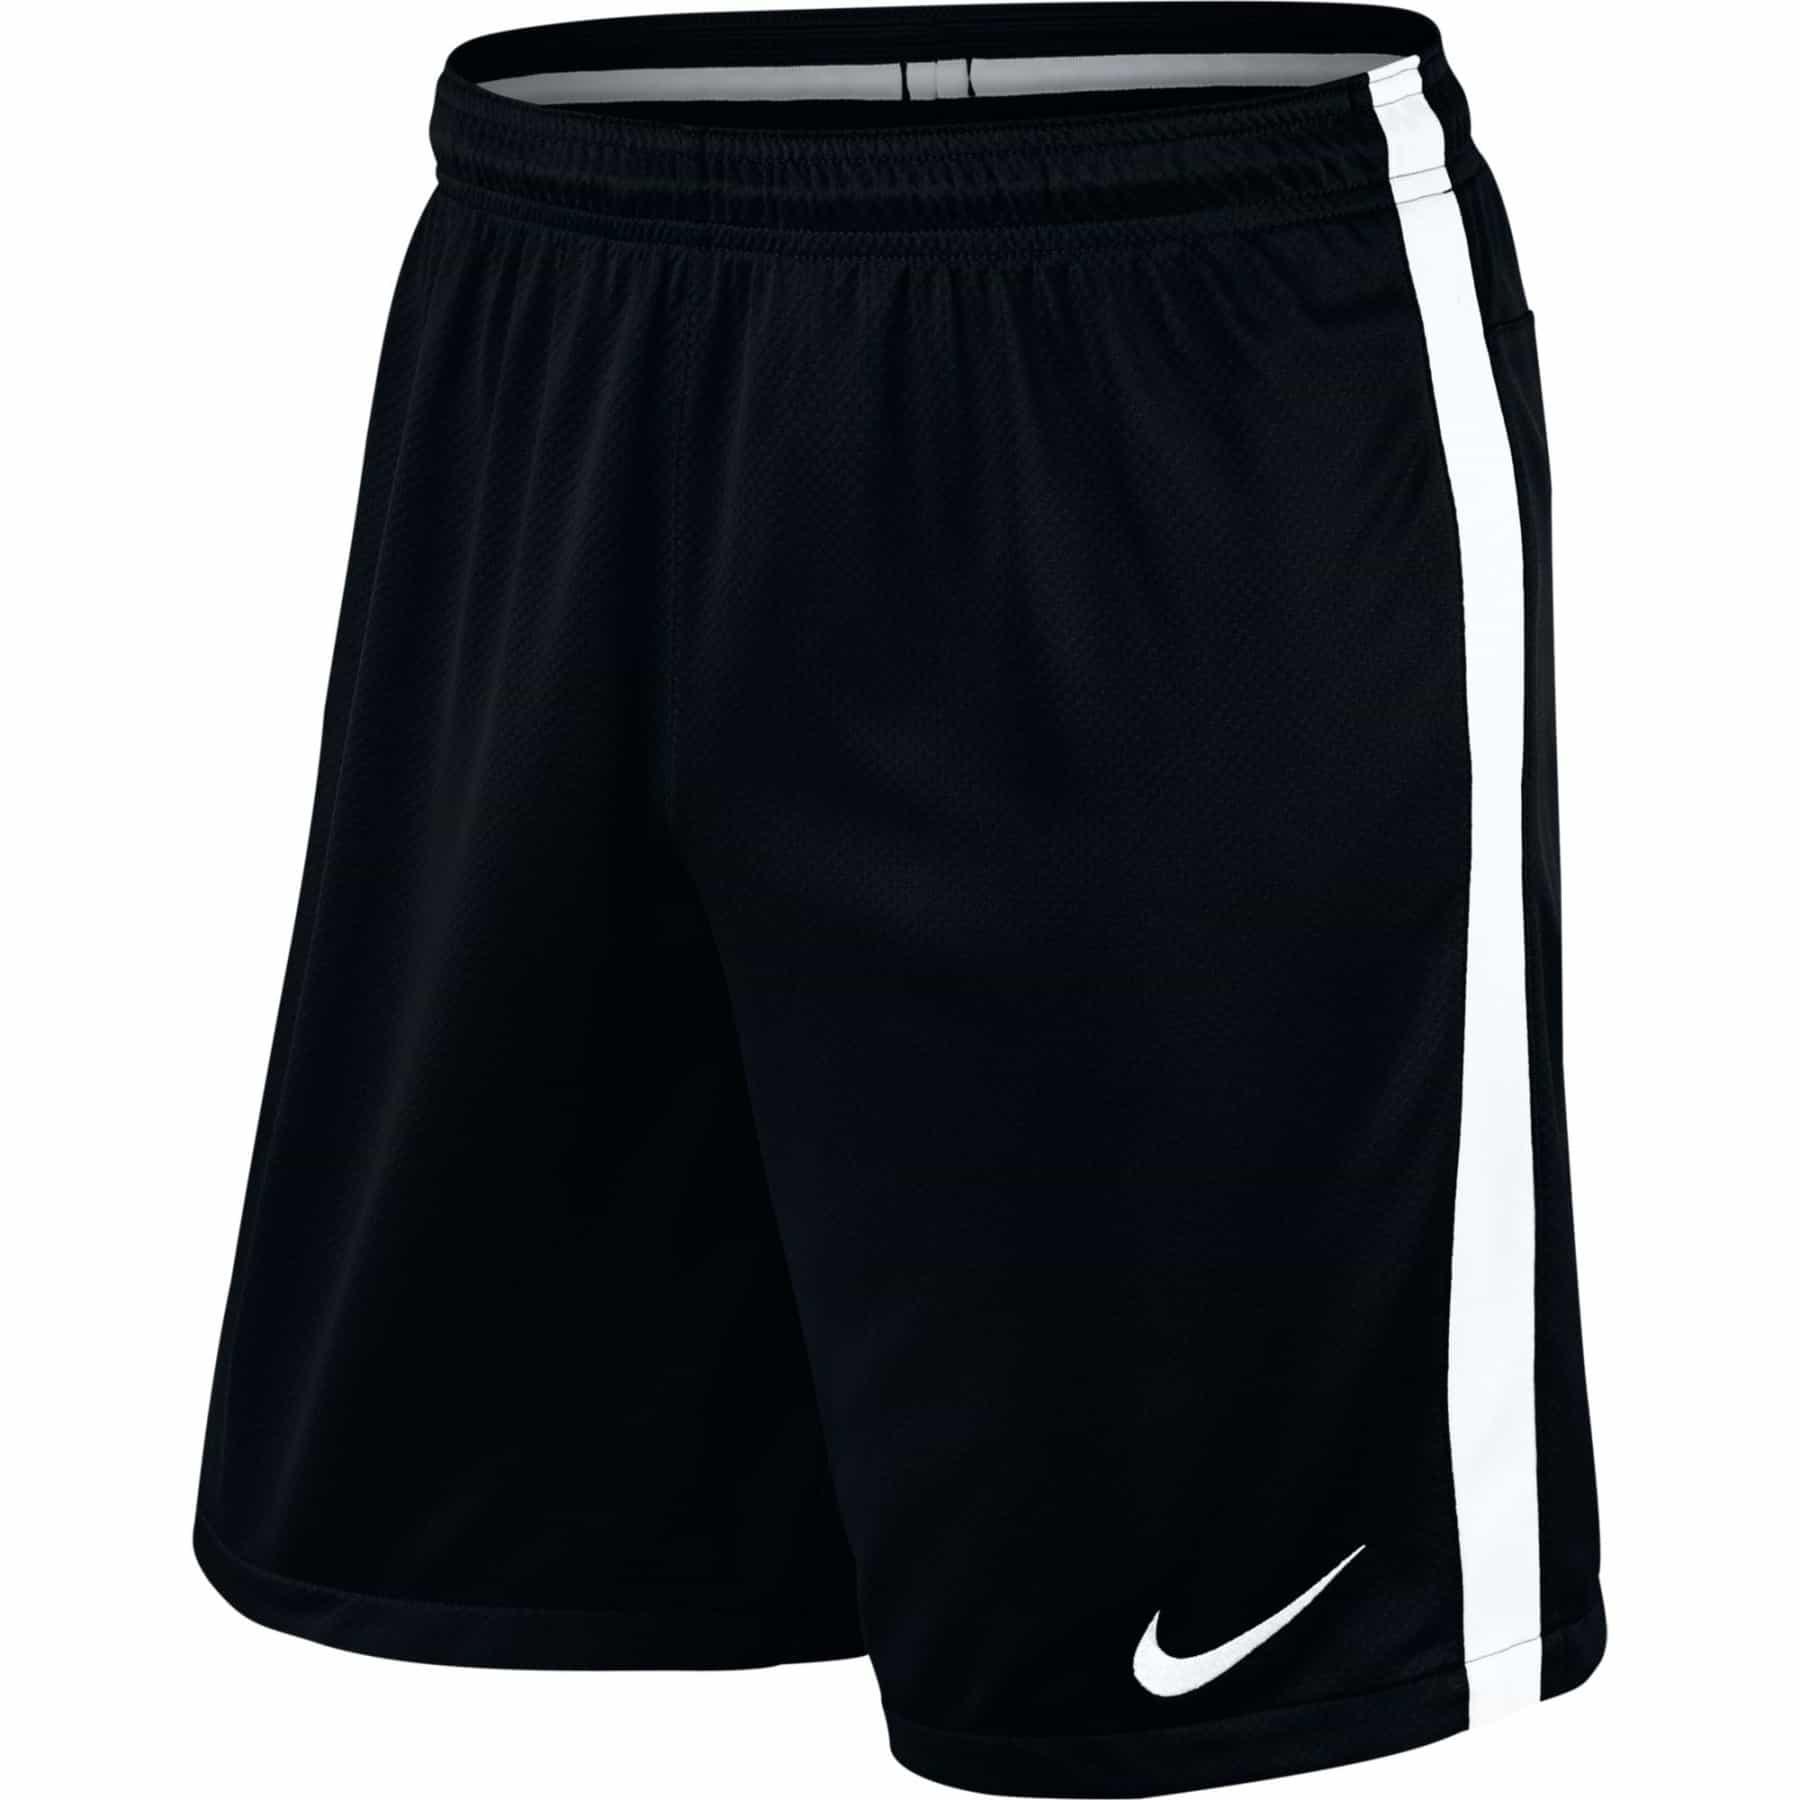 Short Nike Squad 17 • Sports Co Shop 11468da2a6ed